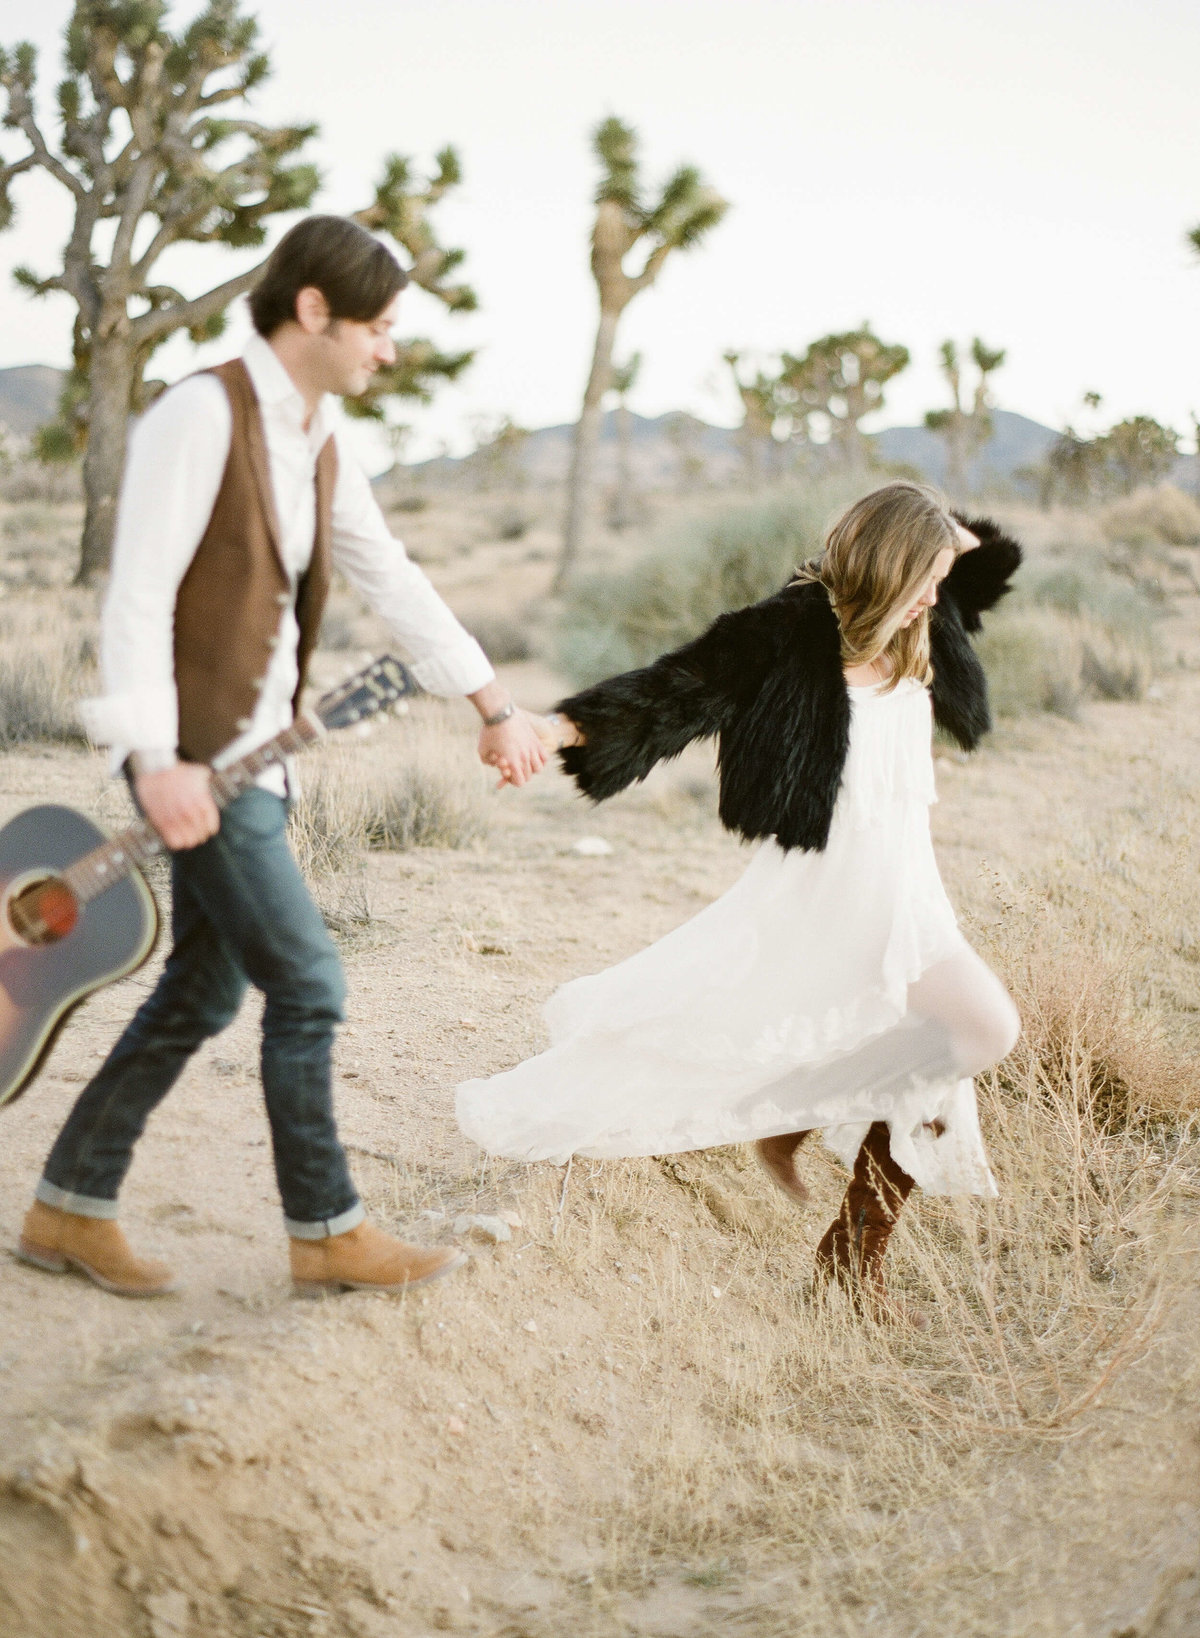 29-KTMerry-engagement-photography-Chloe-dress-Joshua-Tree